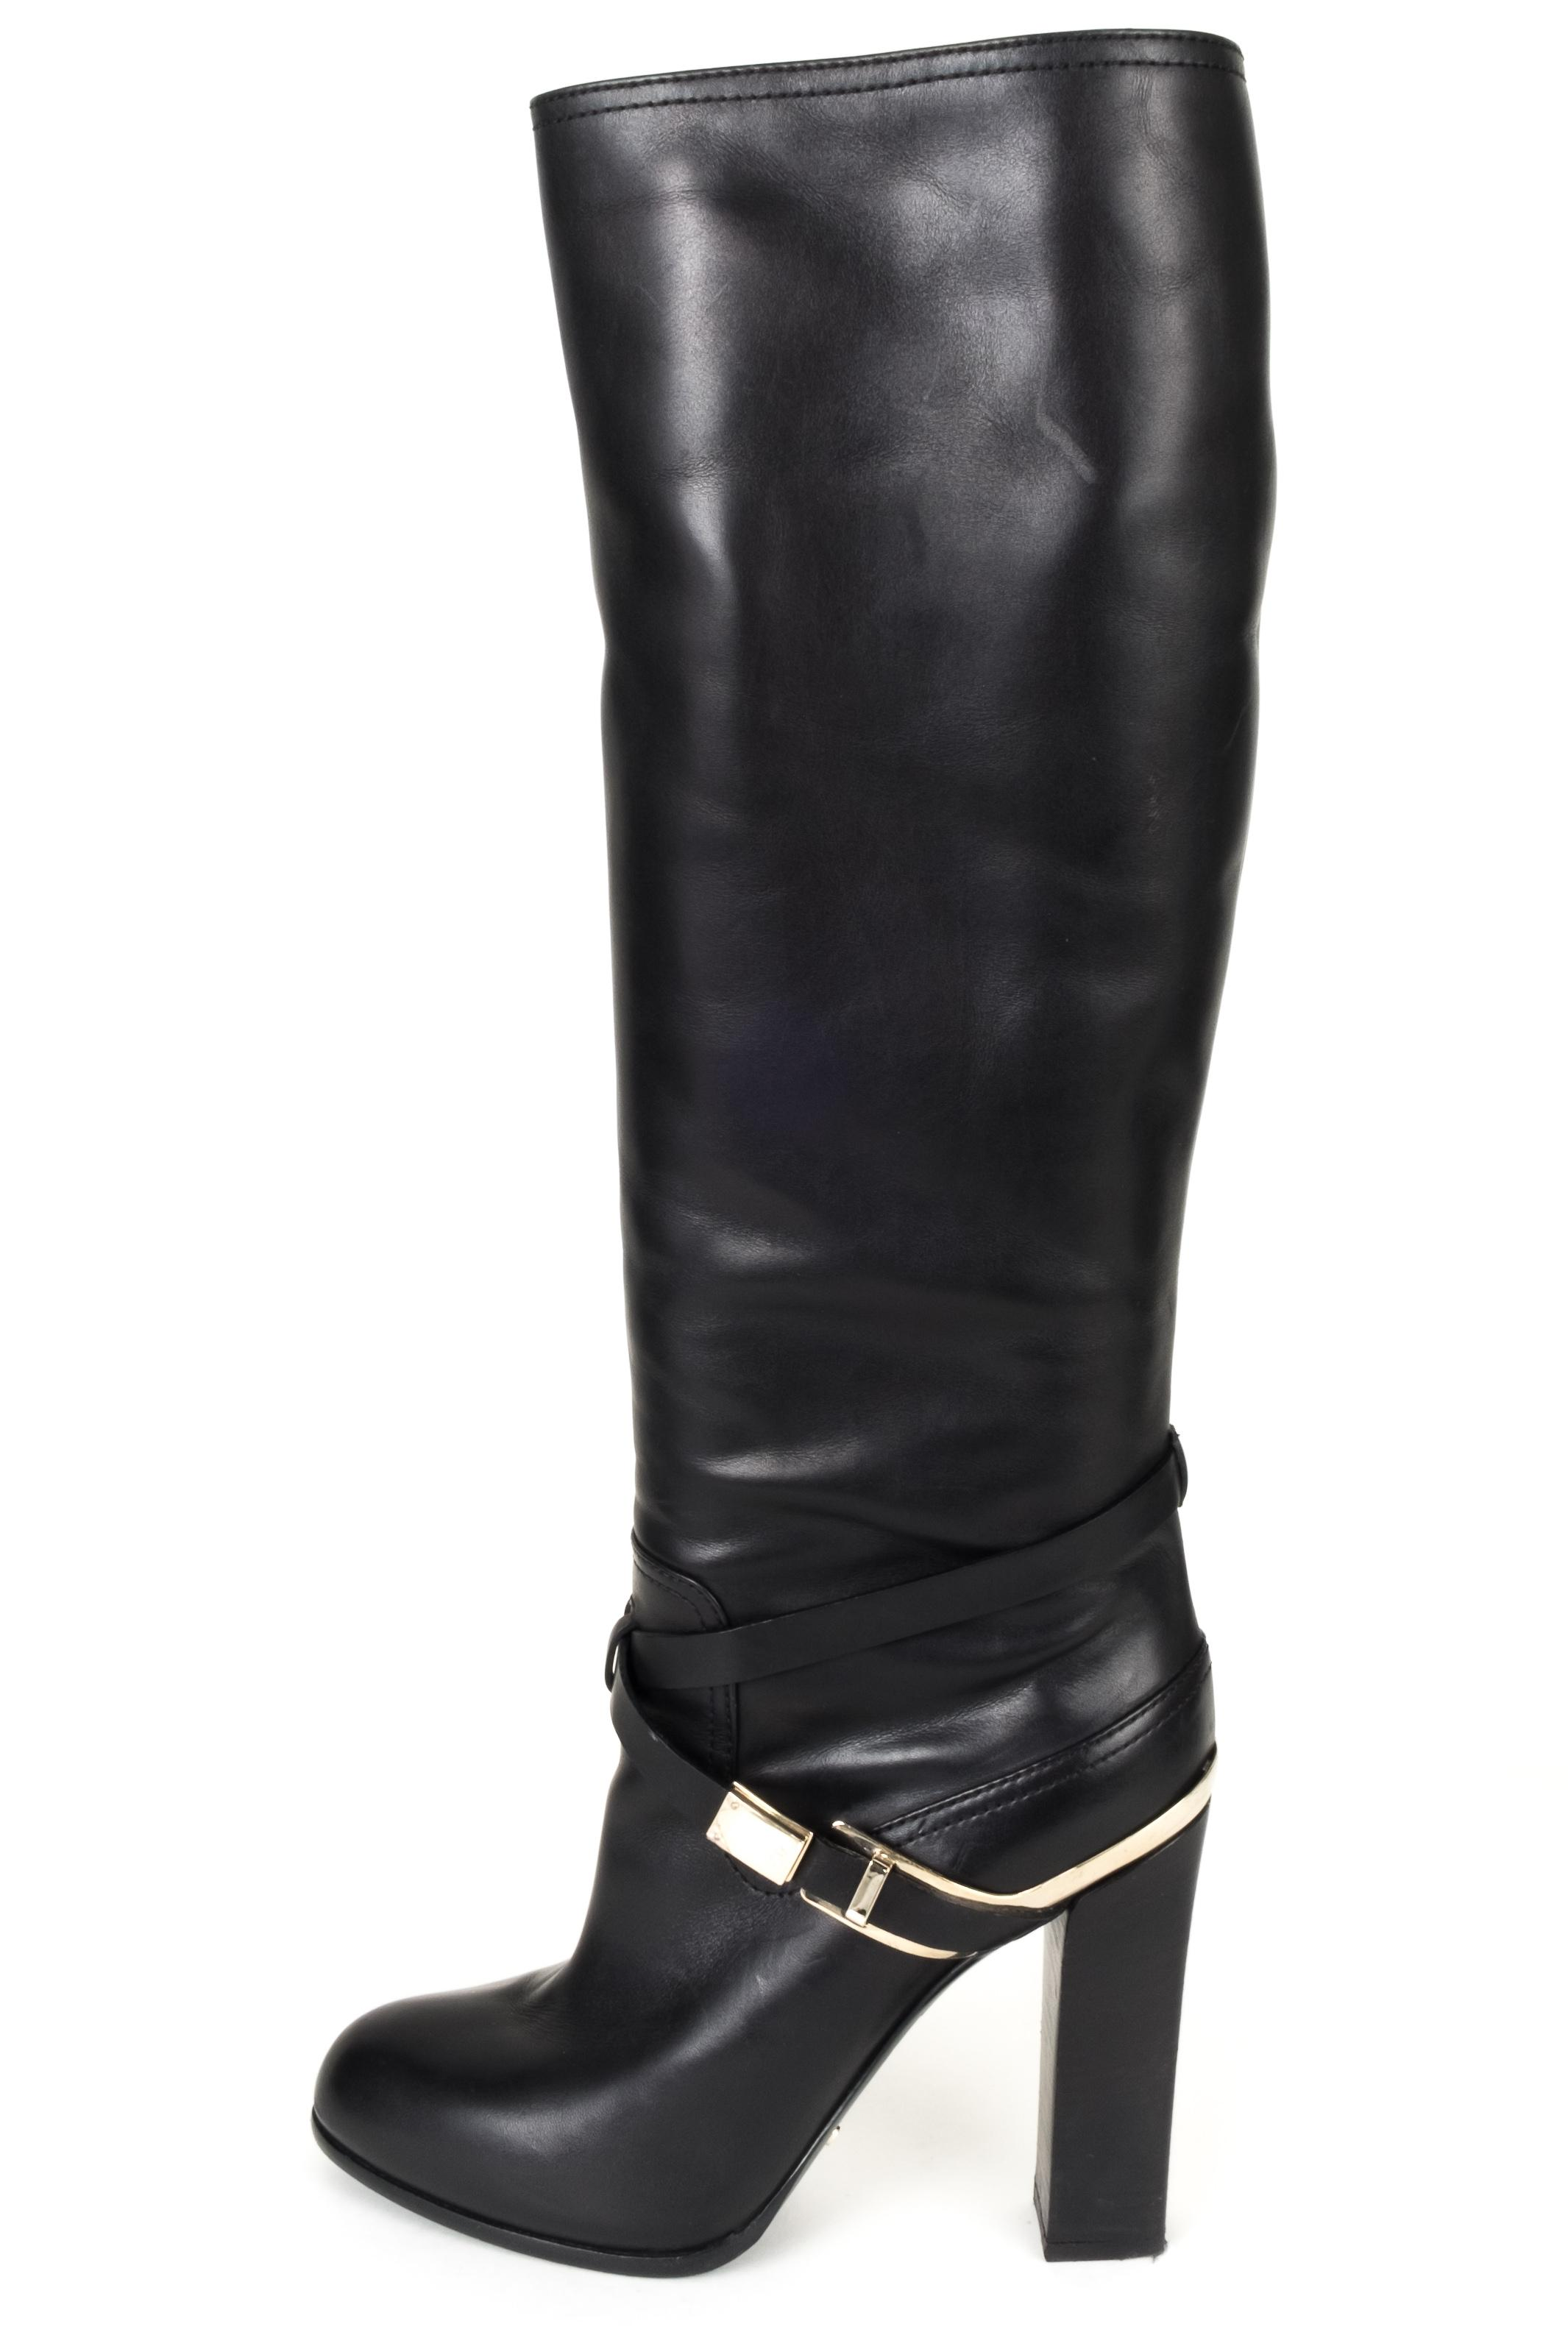 207d2422aace Dior Dior Dior Black Christian Leather Tall Boots Booties Size EU 41  (Approx.